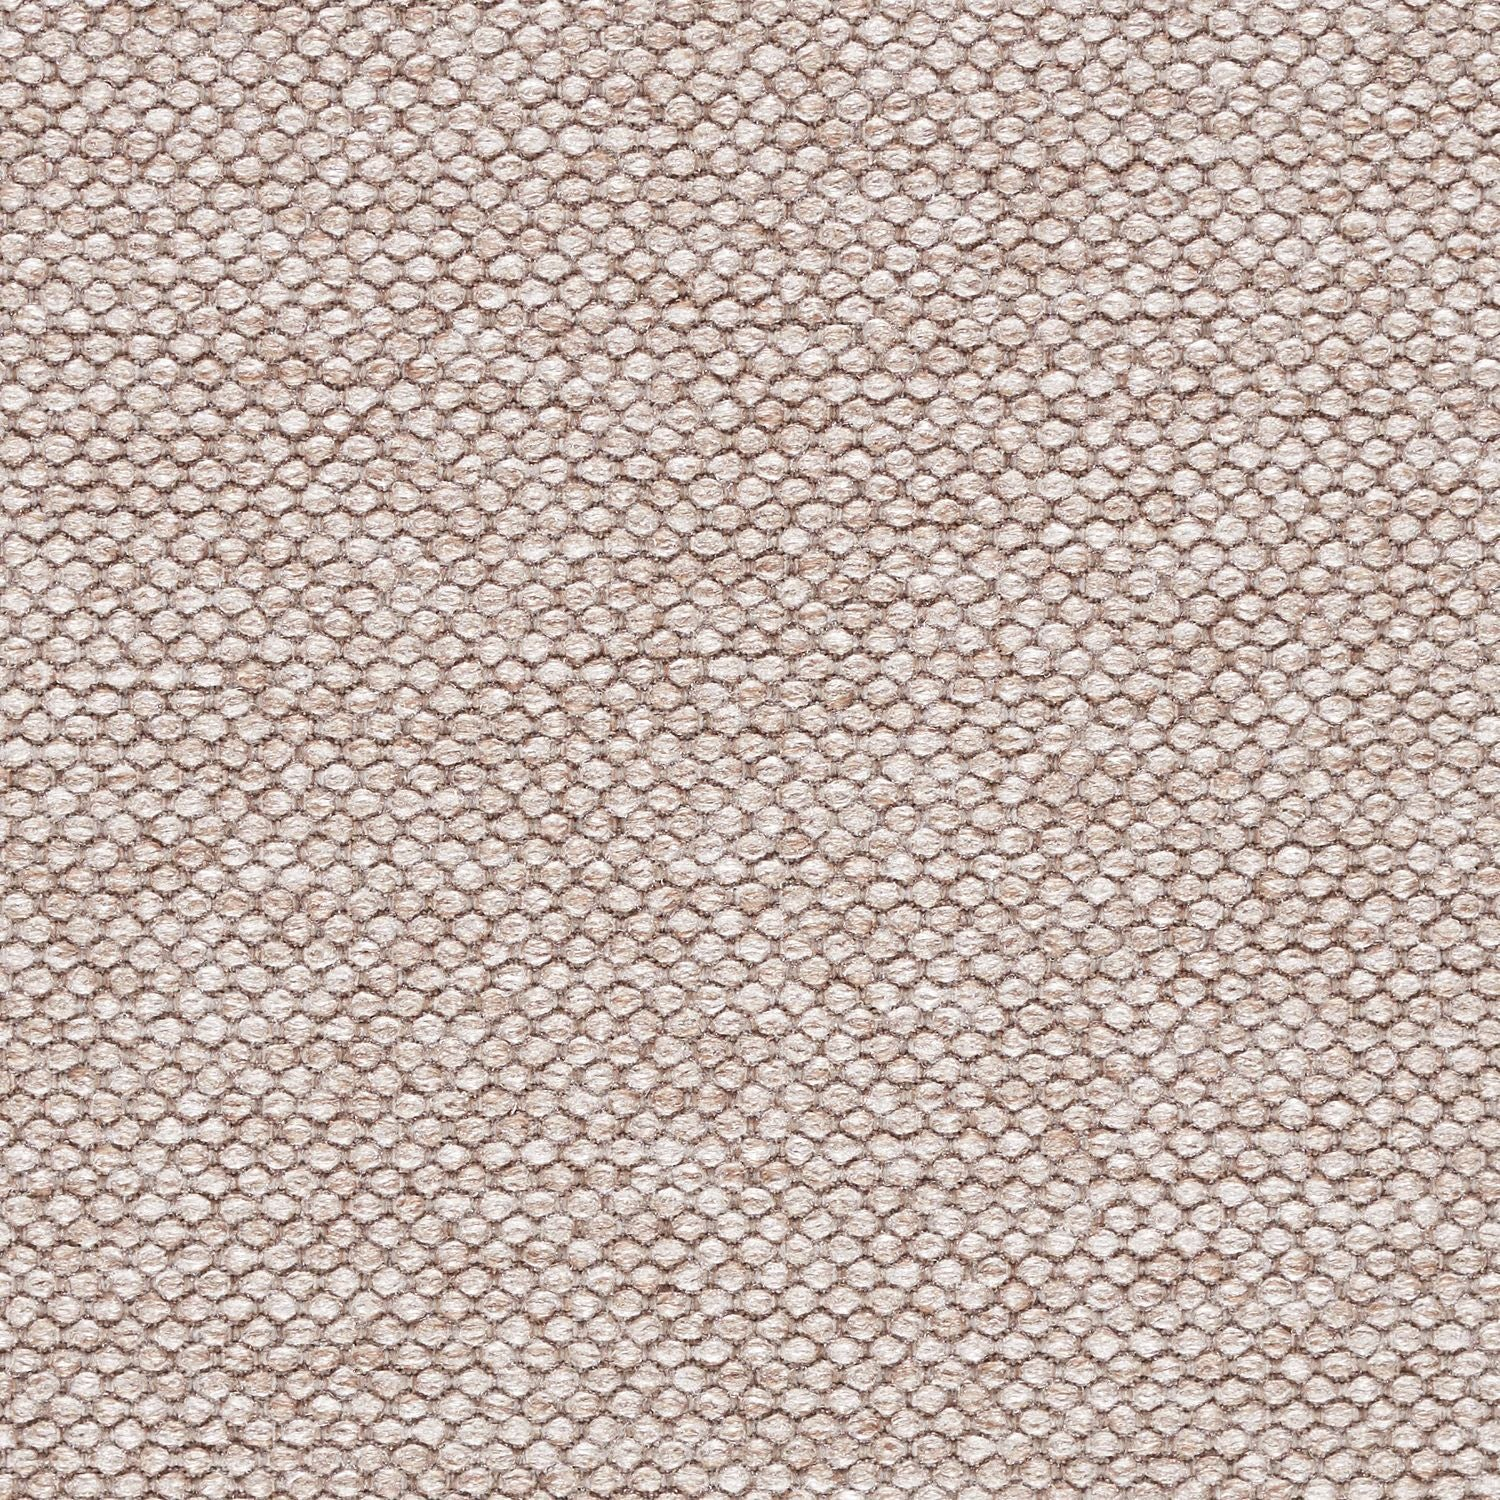 Digi Tweed - Flax Tweed - 4058 - 04